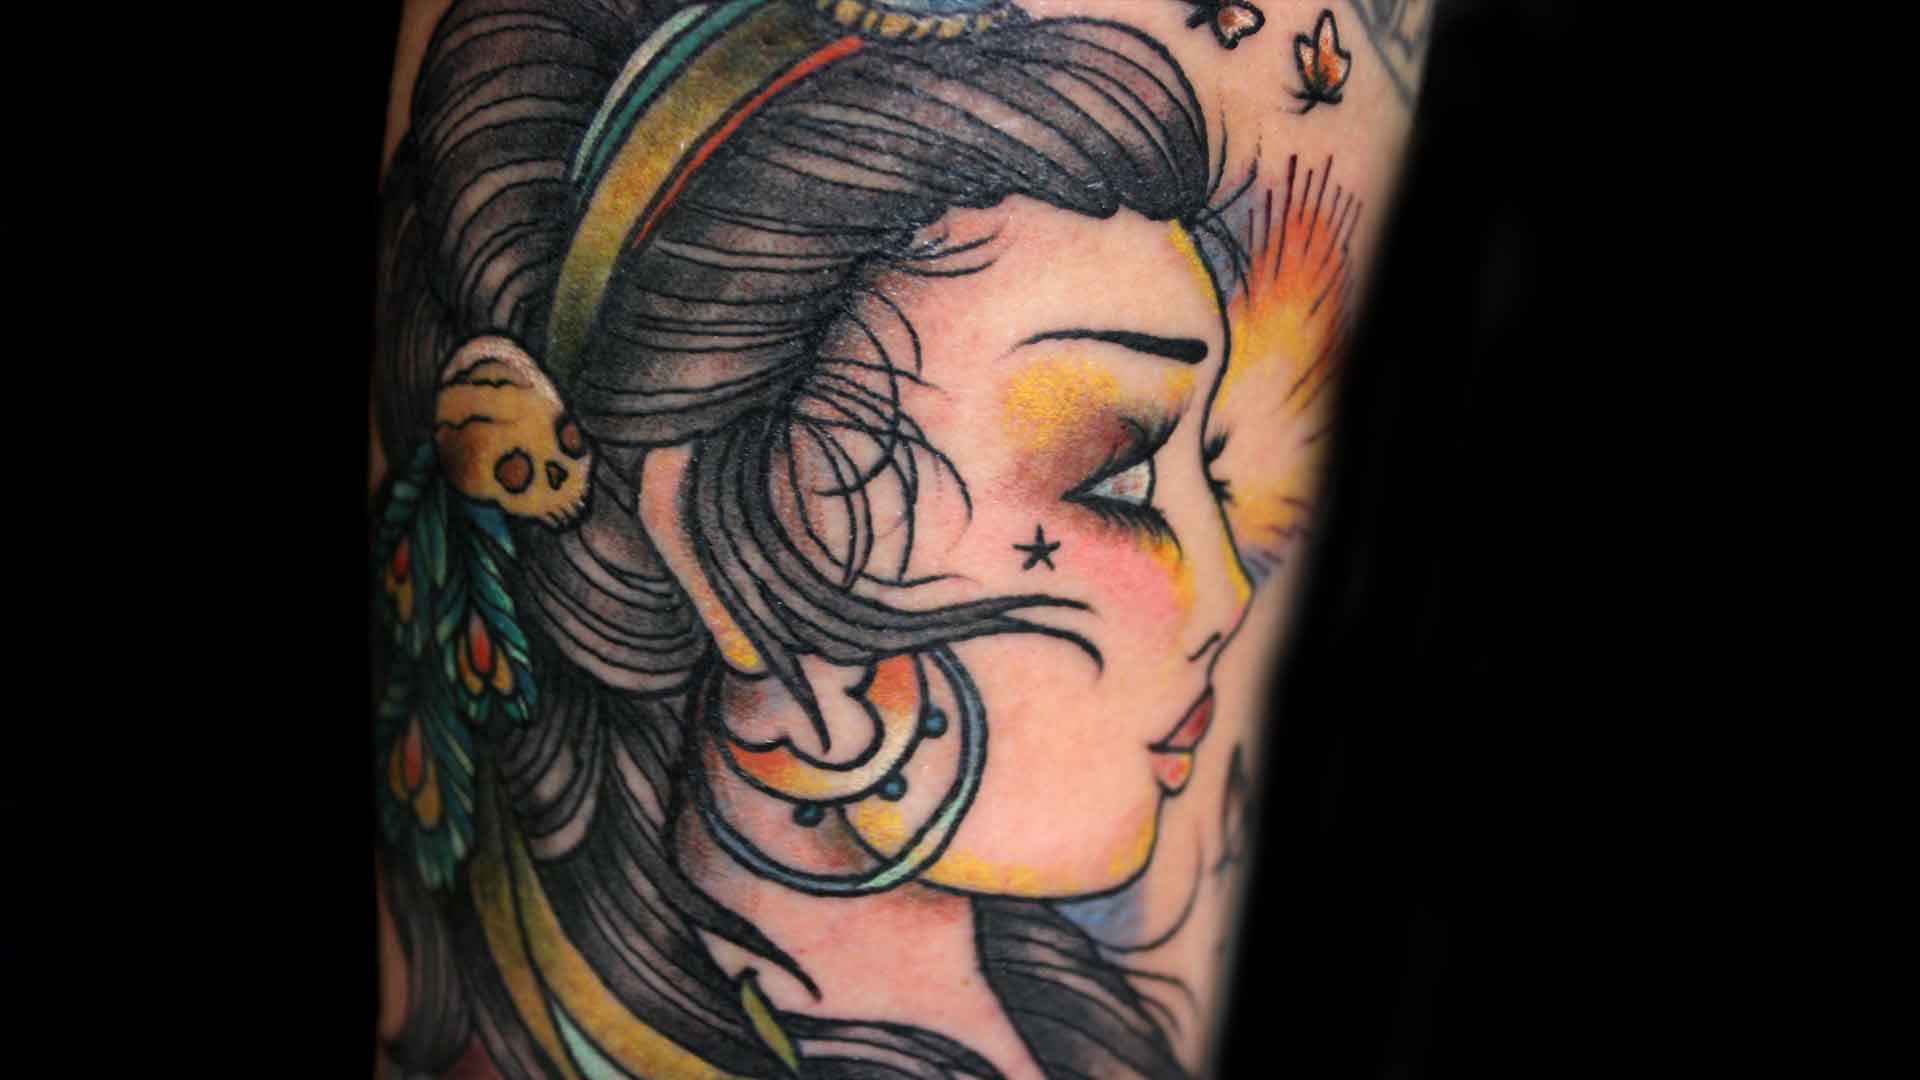 Gypsy Tattoos Designs, Ideas and Meaning | Tattoos For You